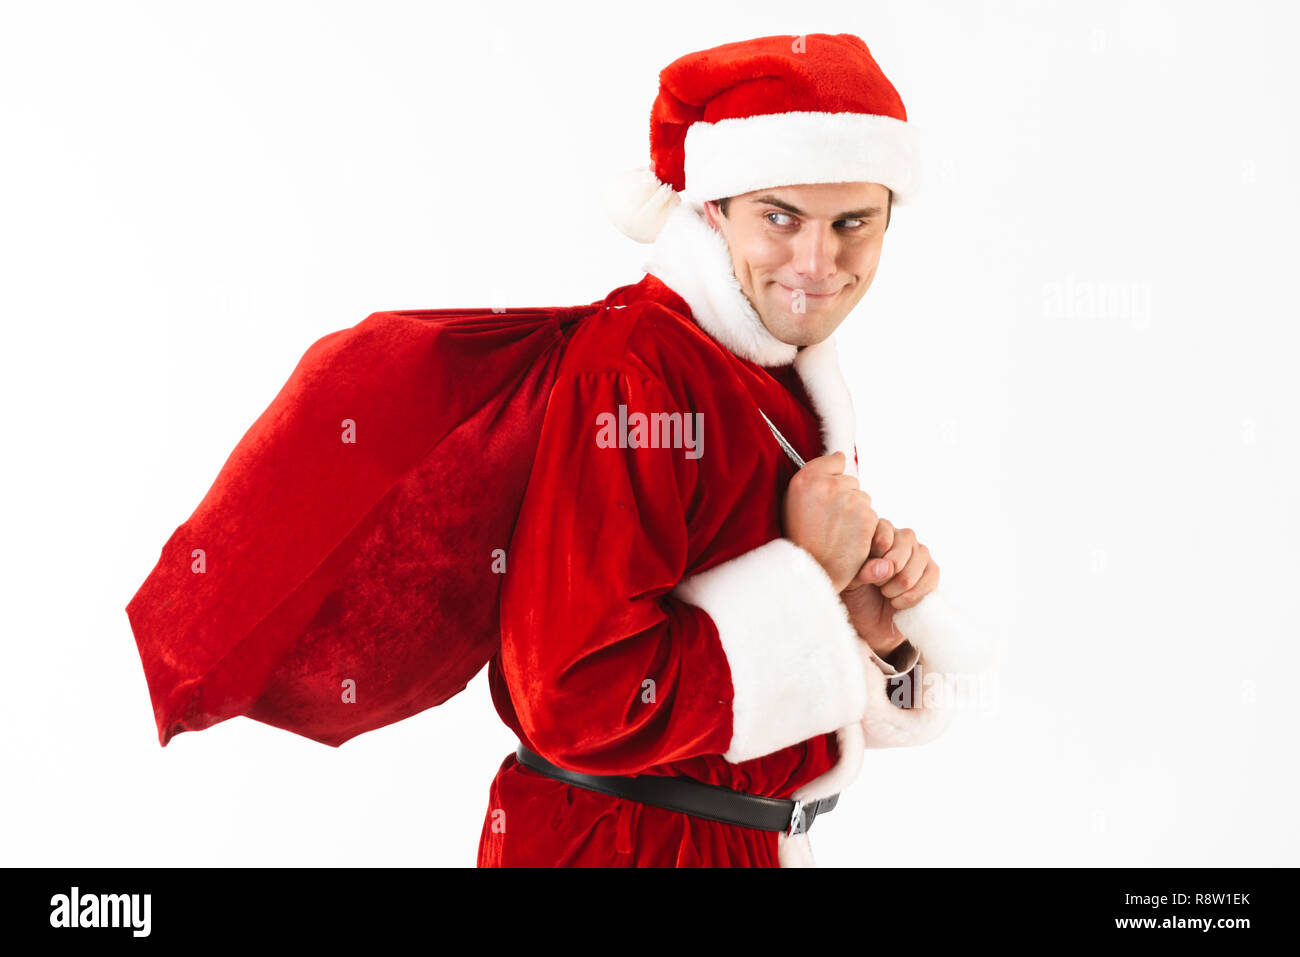 Portrait of tricky man 30s in santa claus costume and red hat walking with gift bag over shoulder isolated on white background in studio - Stock Image